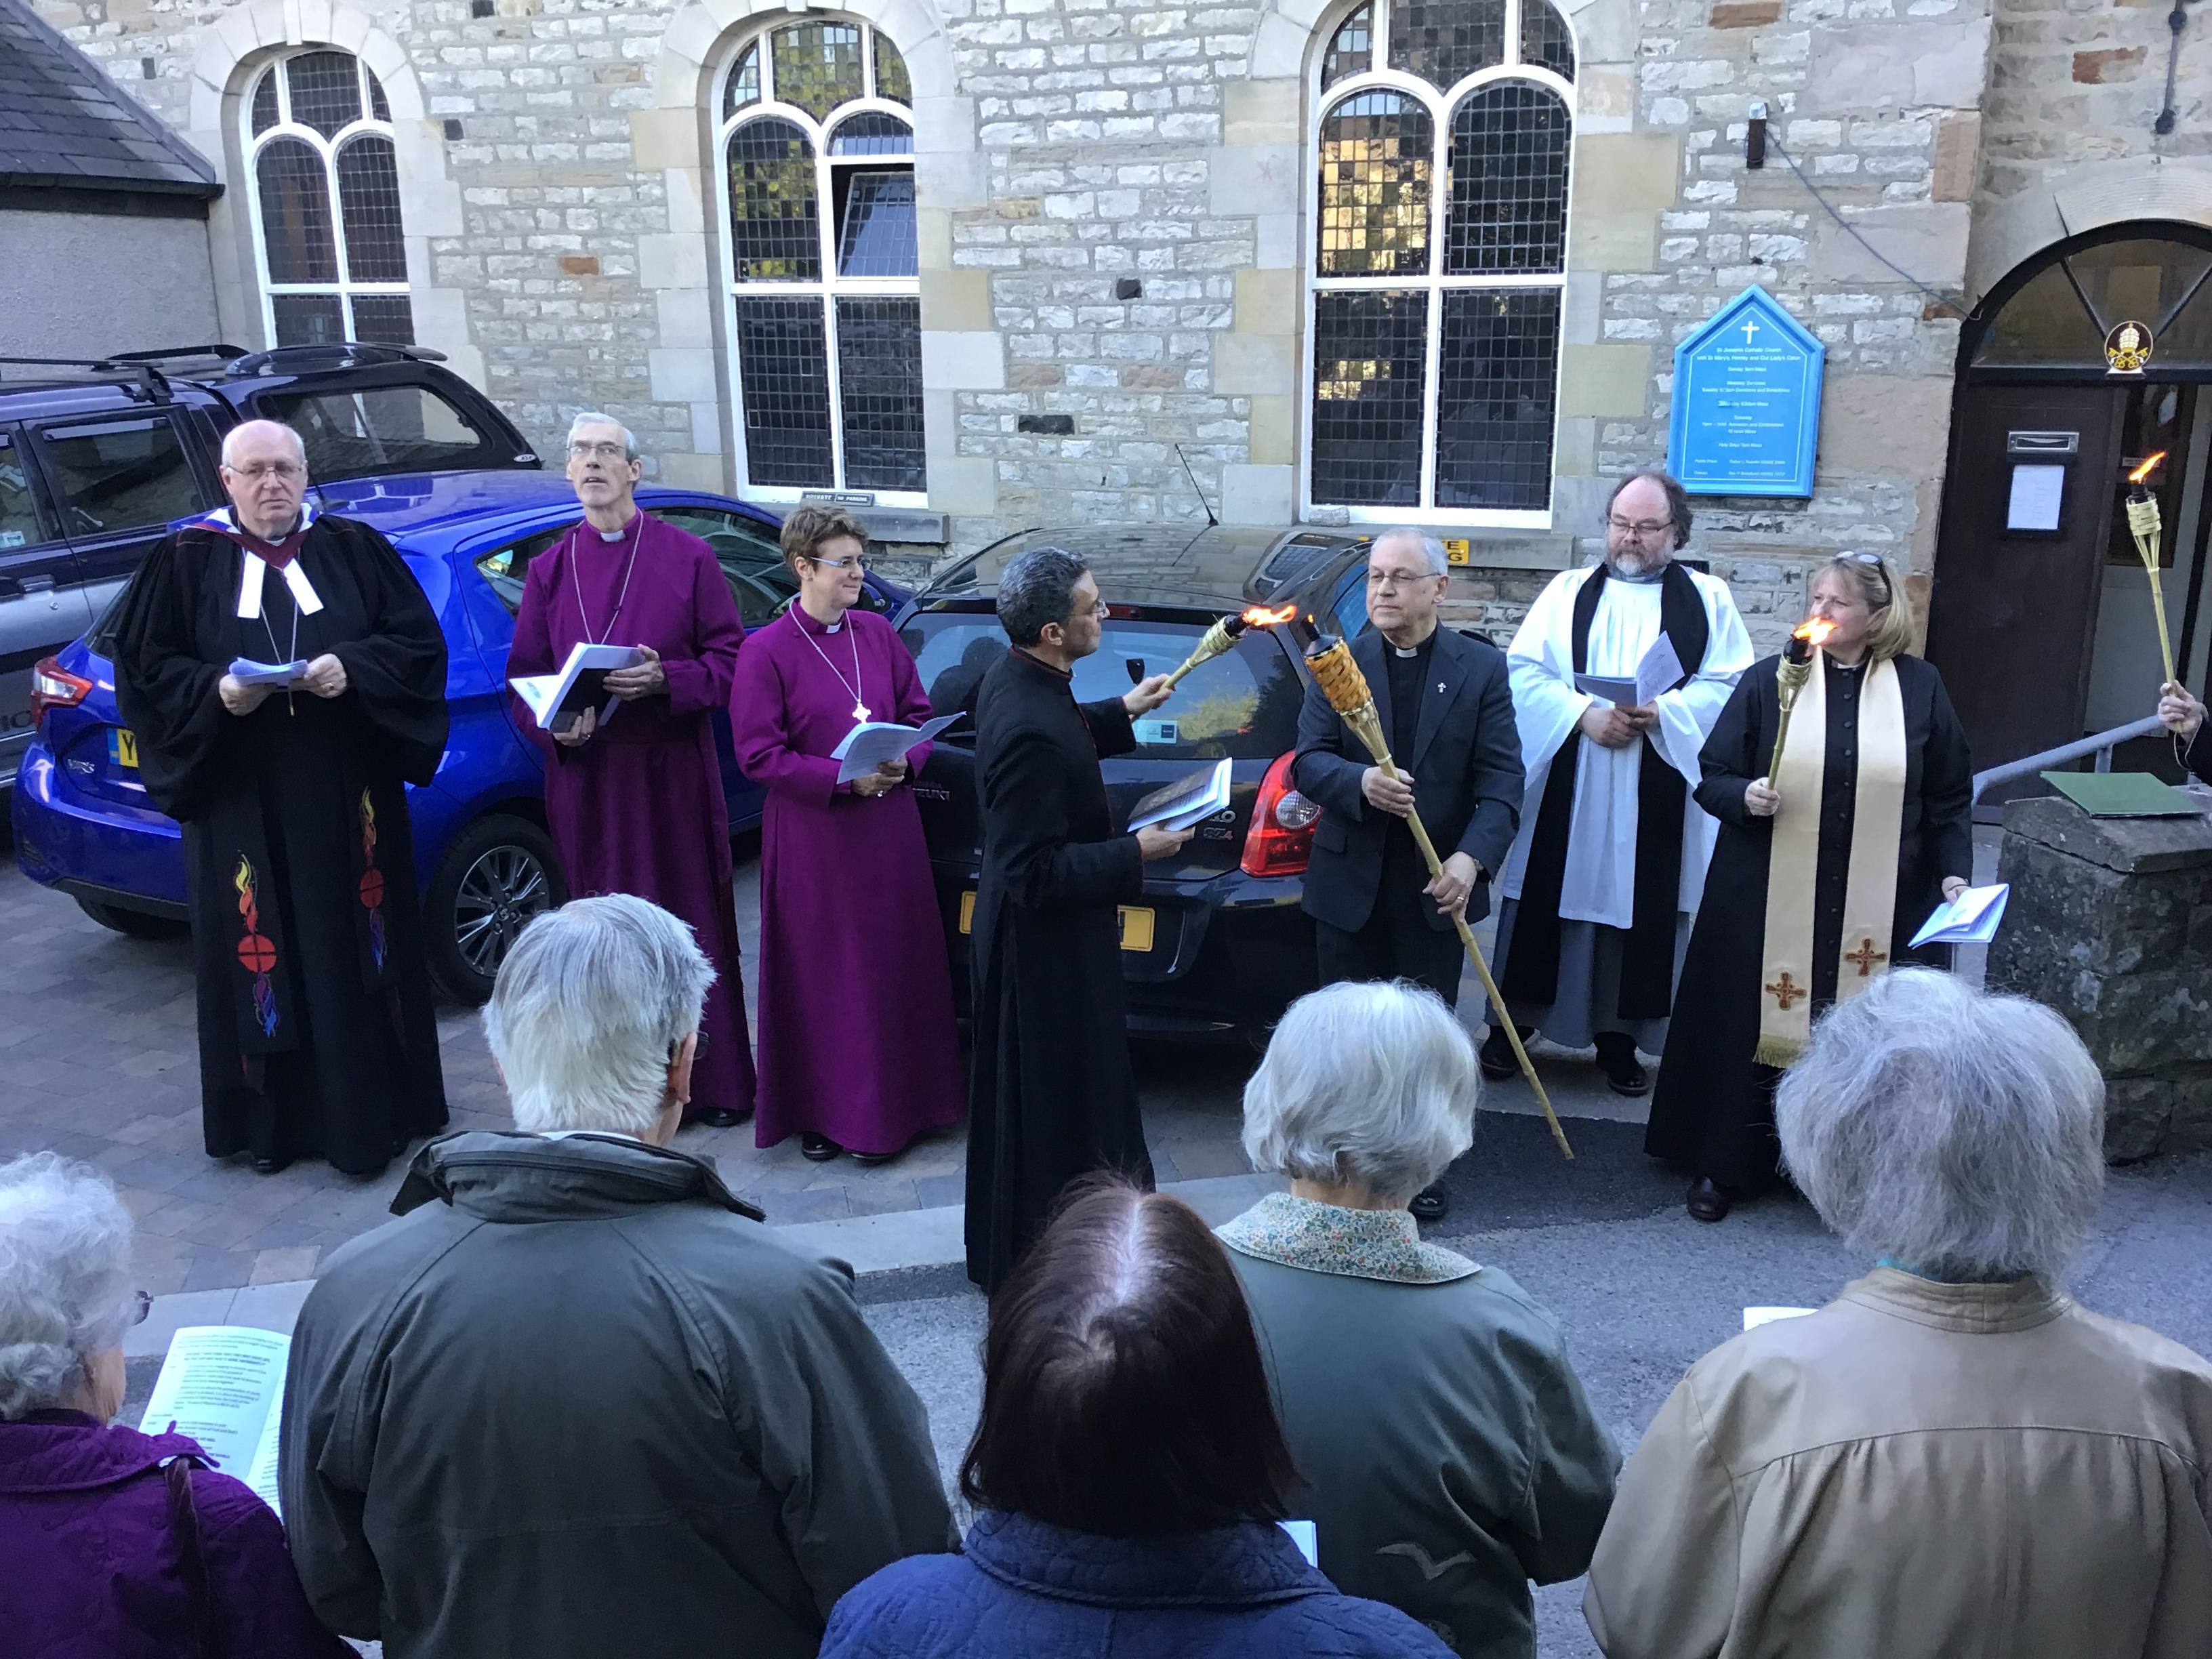 Lighting the beacon carried around churches in Kirkby Lonsdale